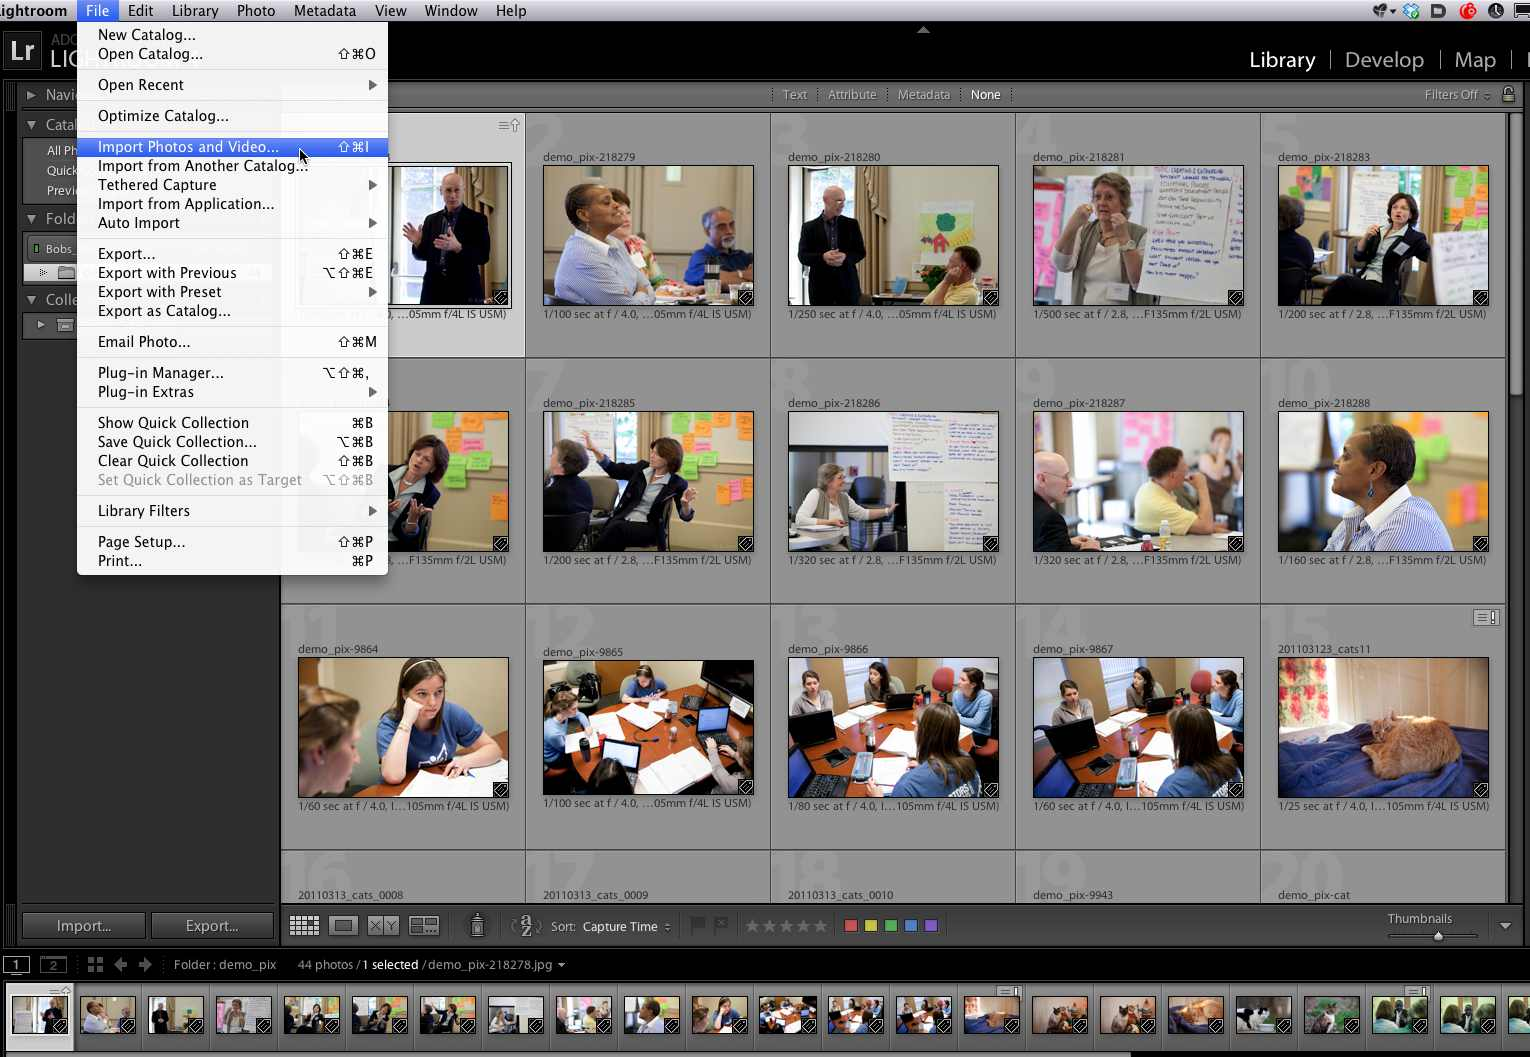 Importing Images 1